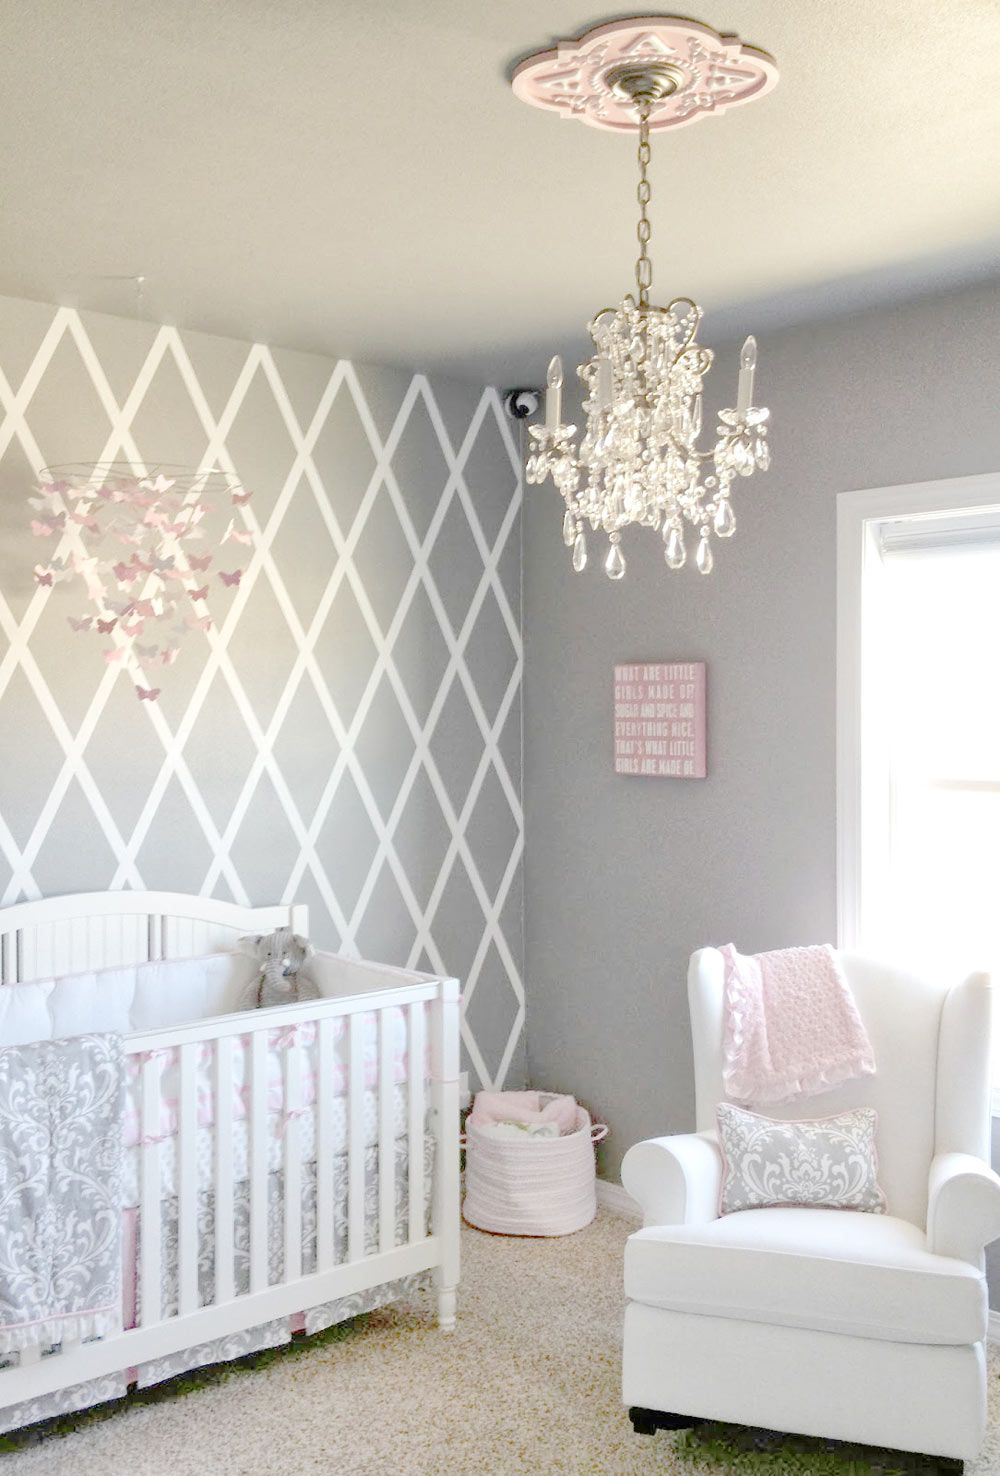 Beautiful Gray And Pink Nursery Features Our Stella Gray Baby Bedding  Collection! So Pretty For A Baby Girlu0027s Nursery! I Like The Wall Paint Idea  Not Colors ...